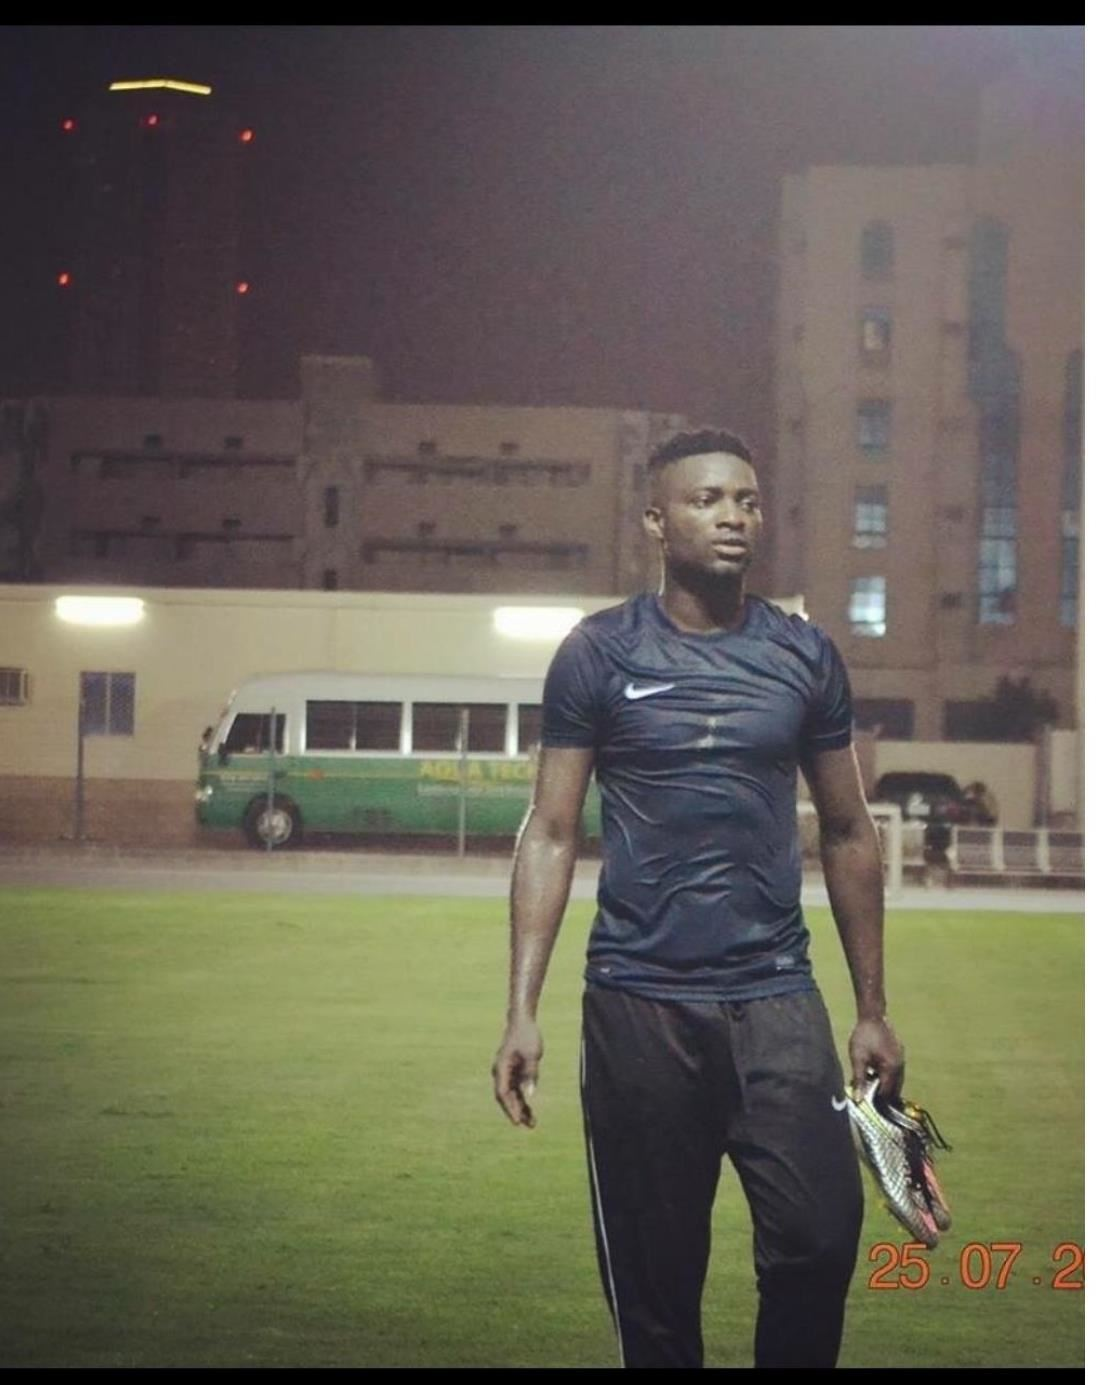 C.D. Walter Football Club to Has Agreed a Five Year Deal with the Nigerian Wonder Boy for 30,000